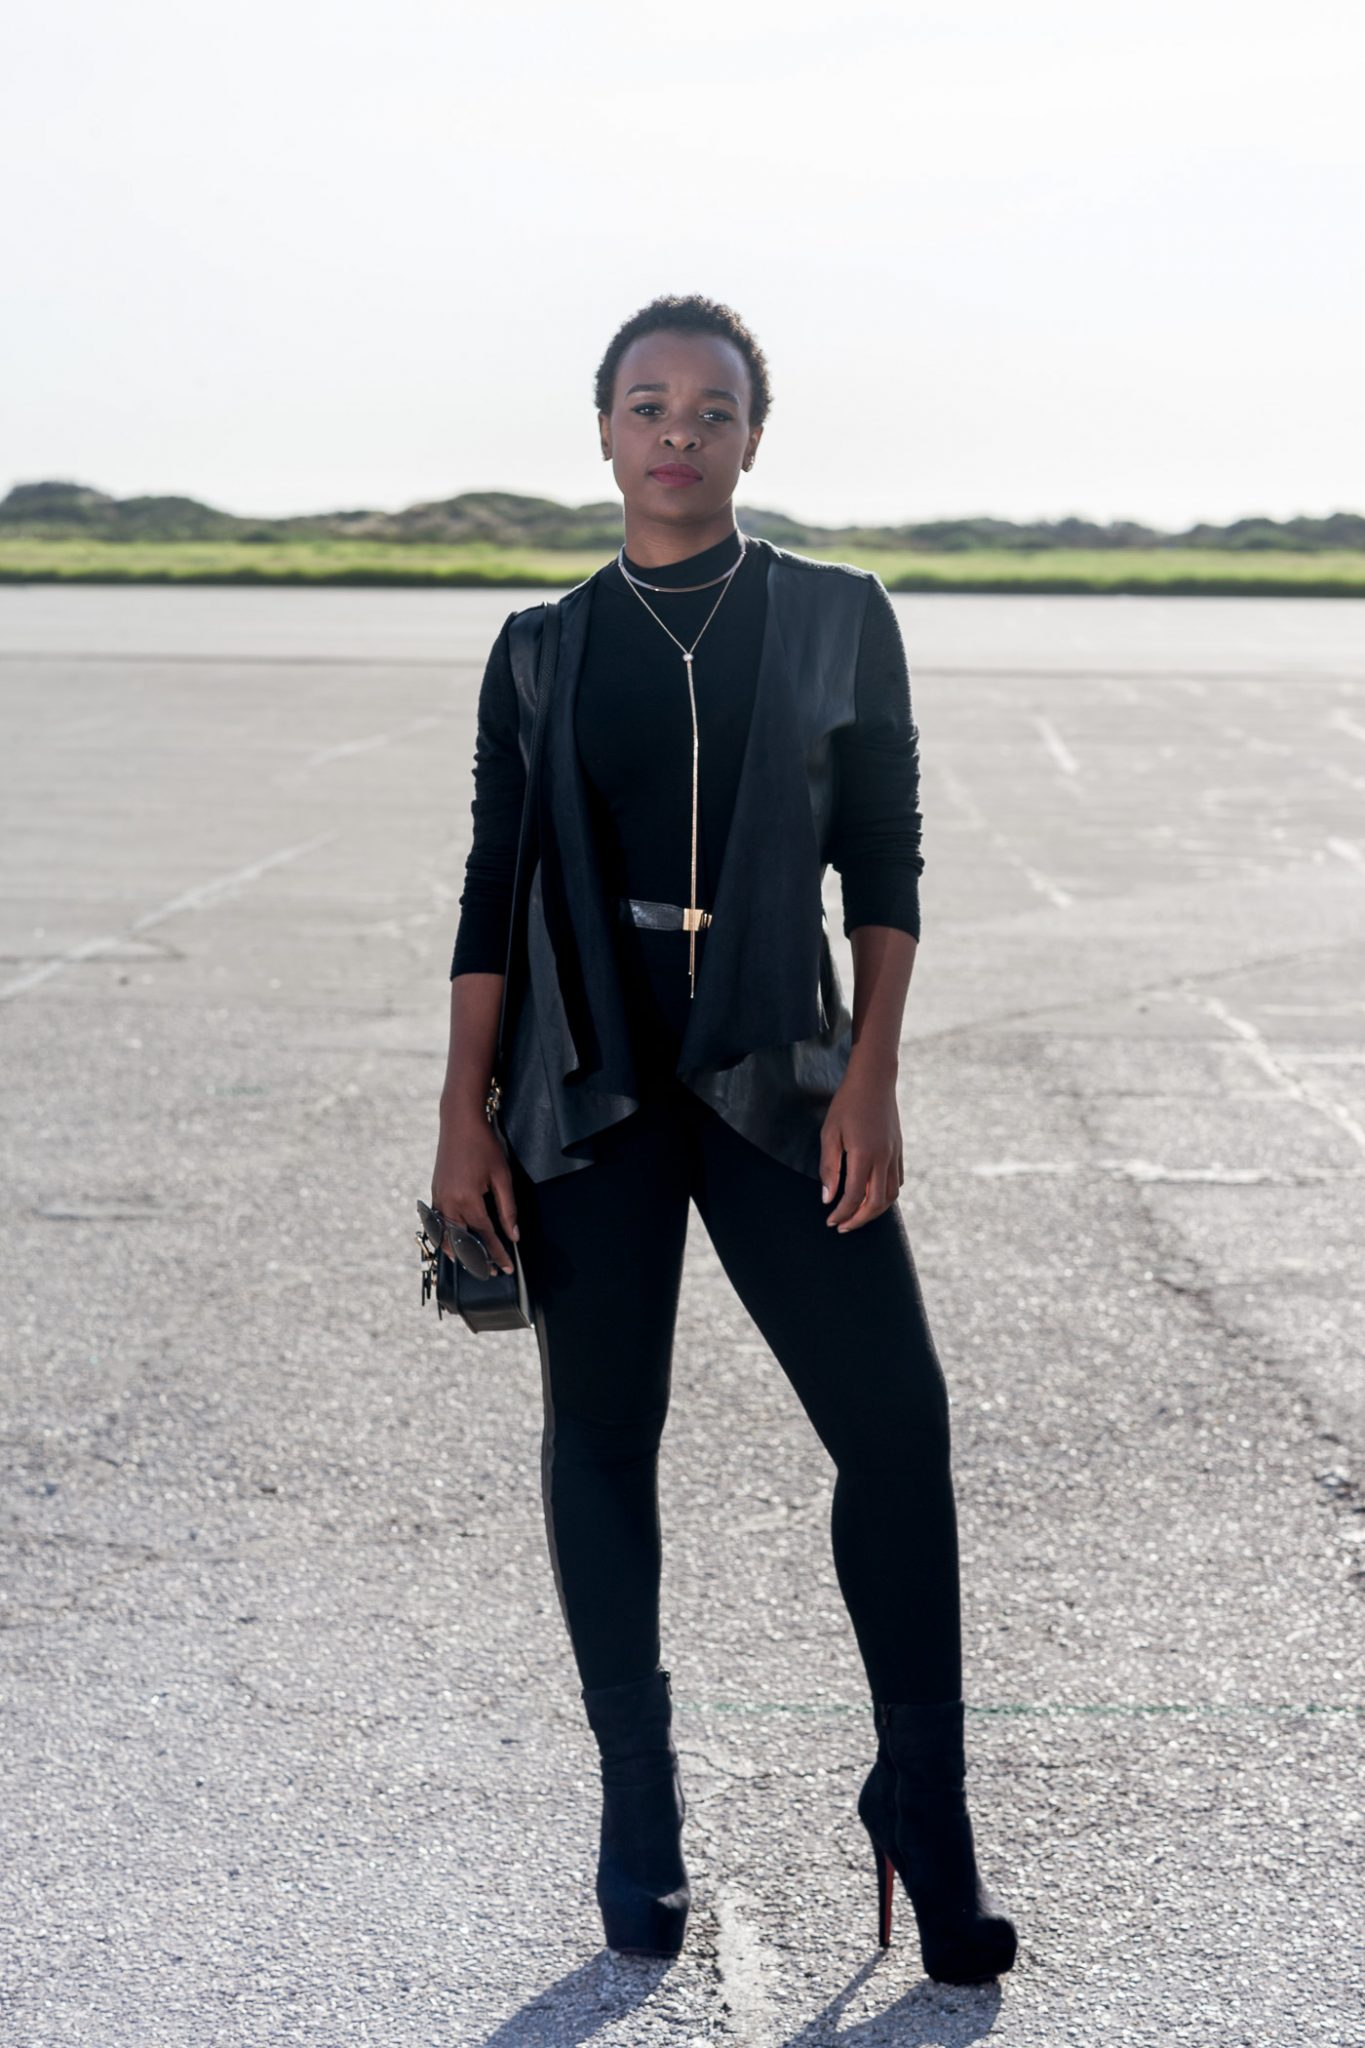 FASHION | How to Wear All Black Without Looking Boring